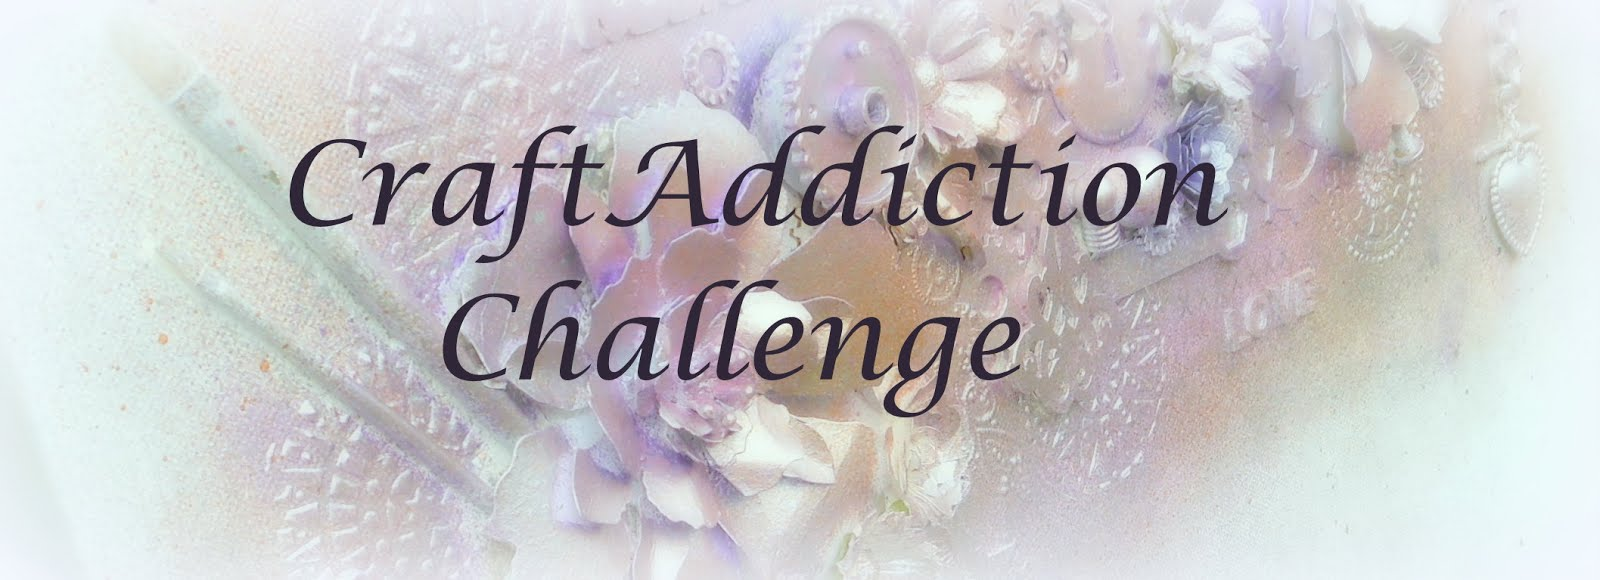 Challenge Craft Addiction